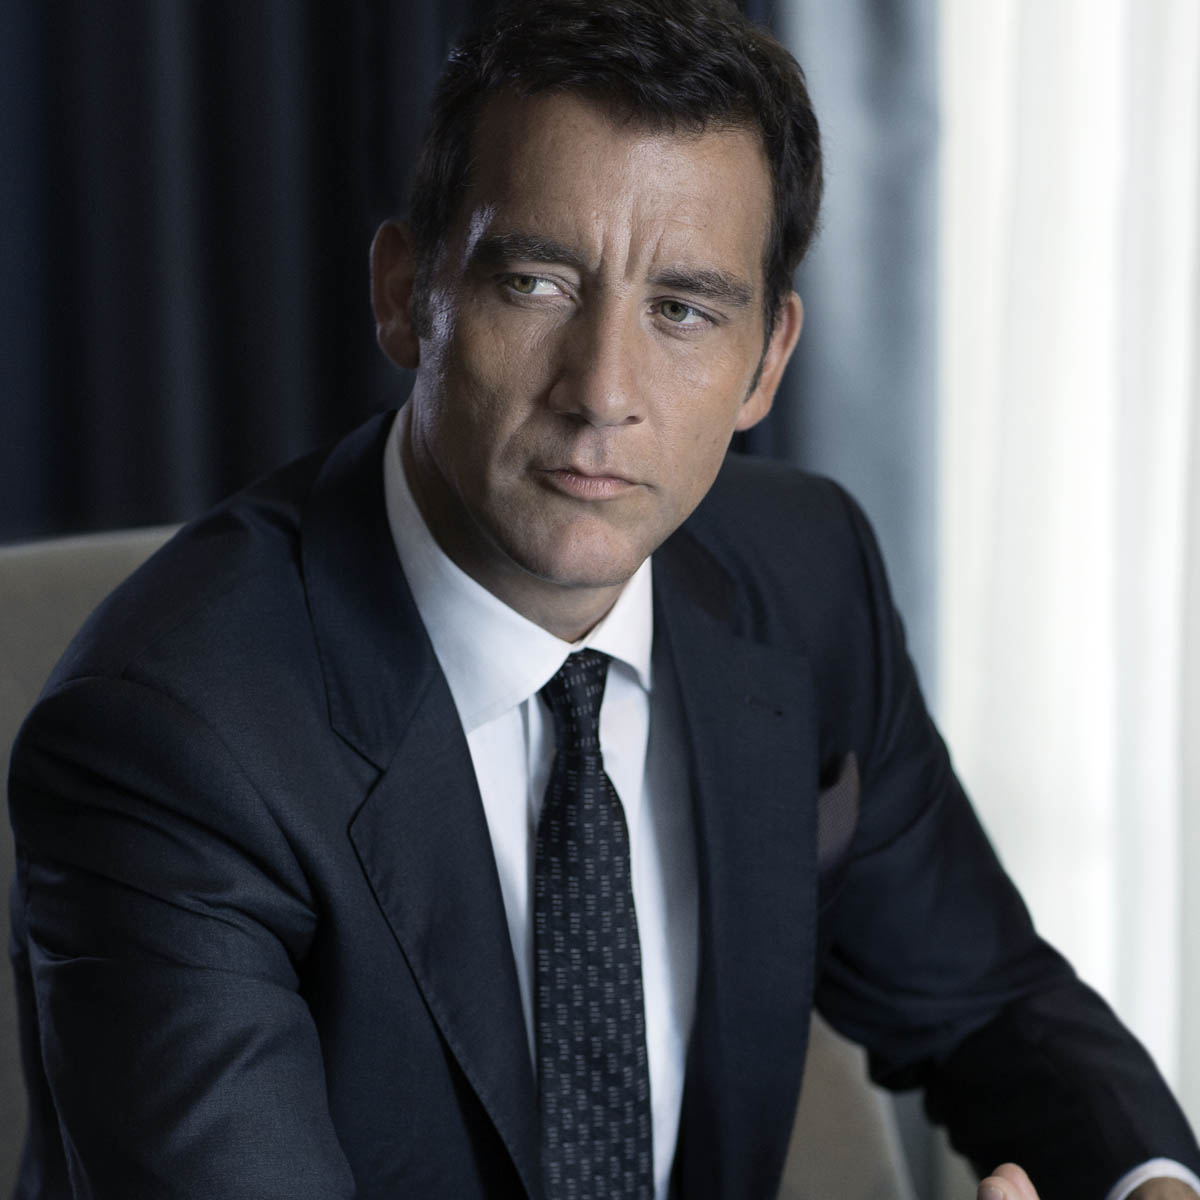 The Watch Quote: Photo - Clive Owen presents Jaeger-LeCoultre's fine watchmaking Duomètre collection